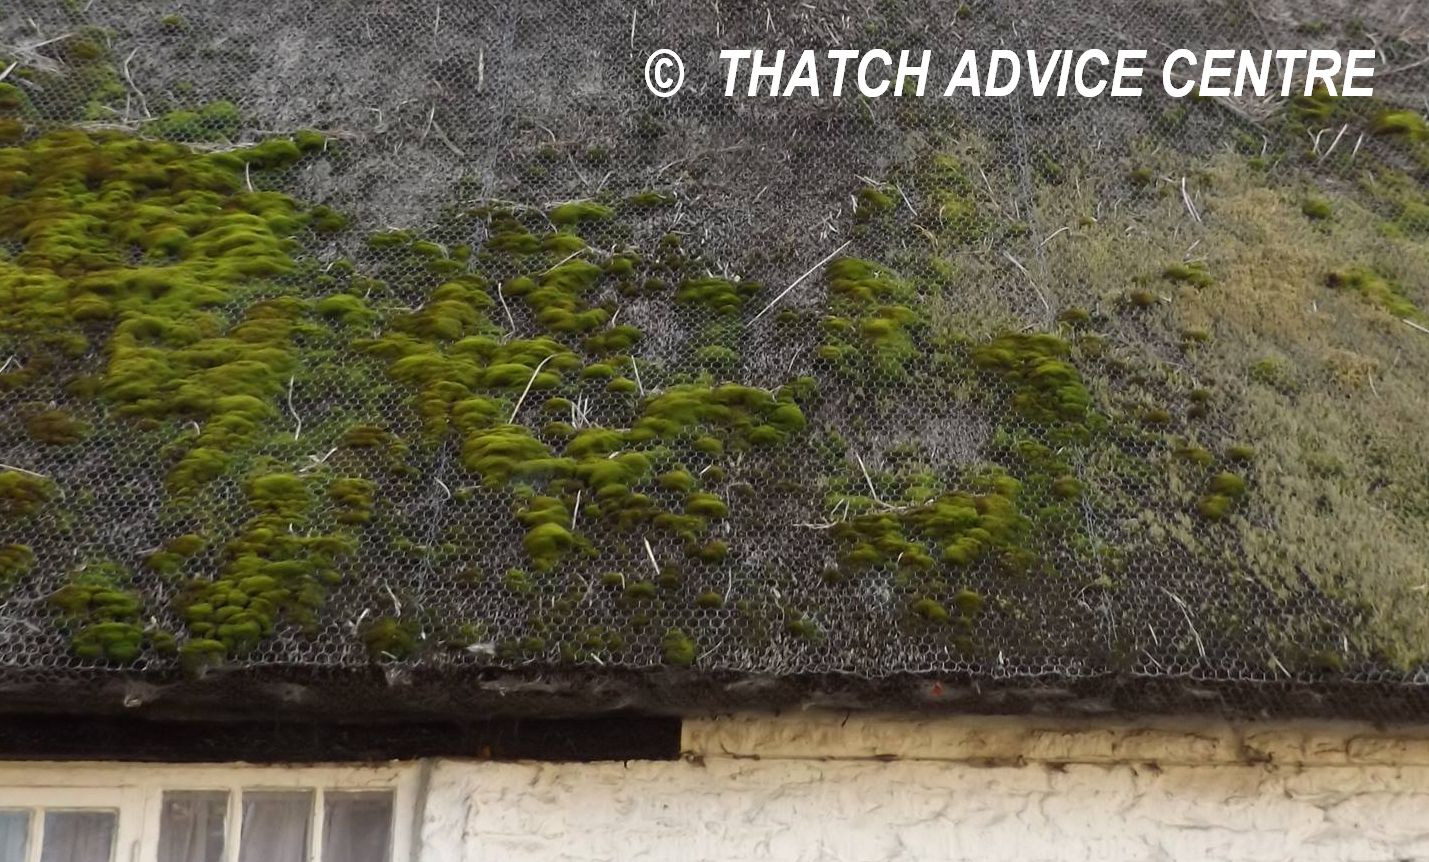 Moss And Lichen On Thatch Thatch Advice Centre